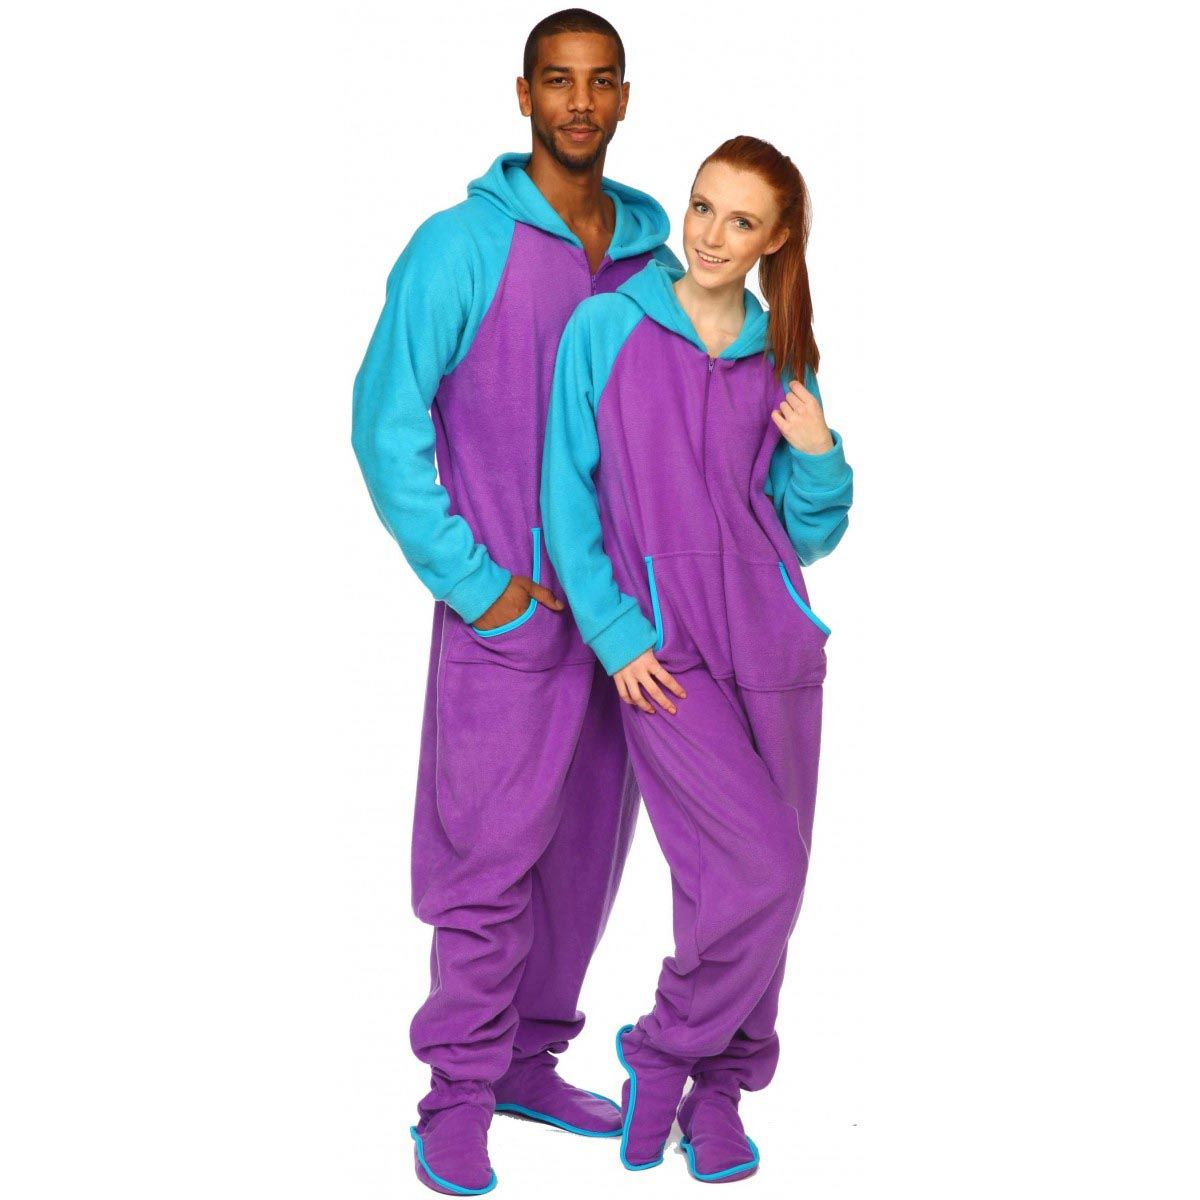 bd4992795d What to Wear to an Adult Pajama Party